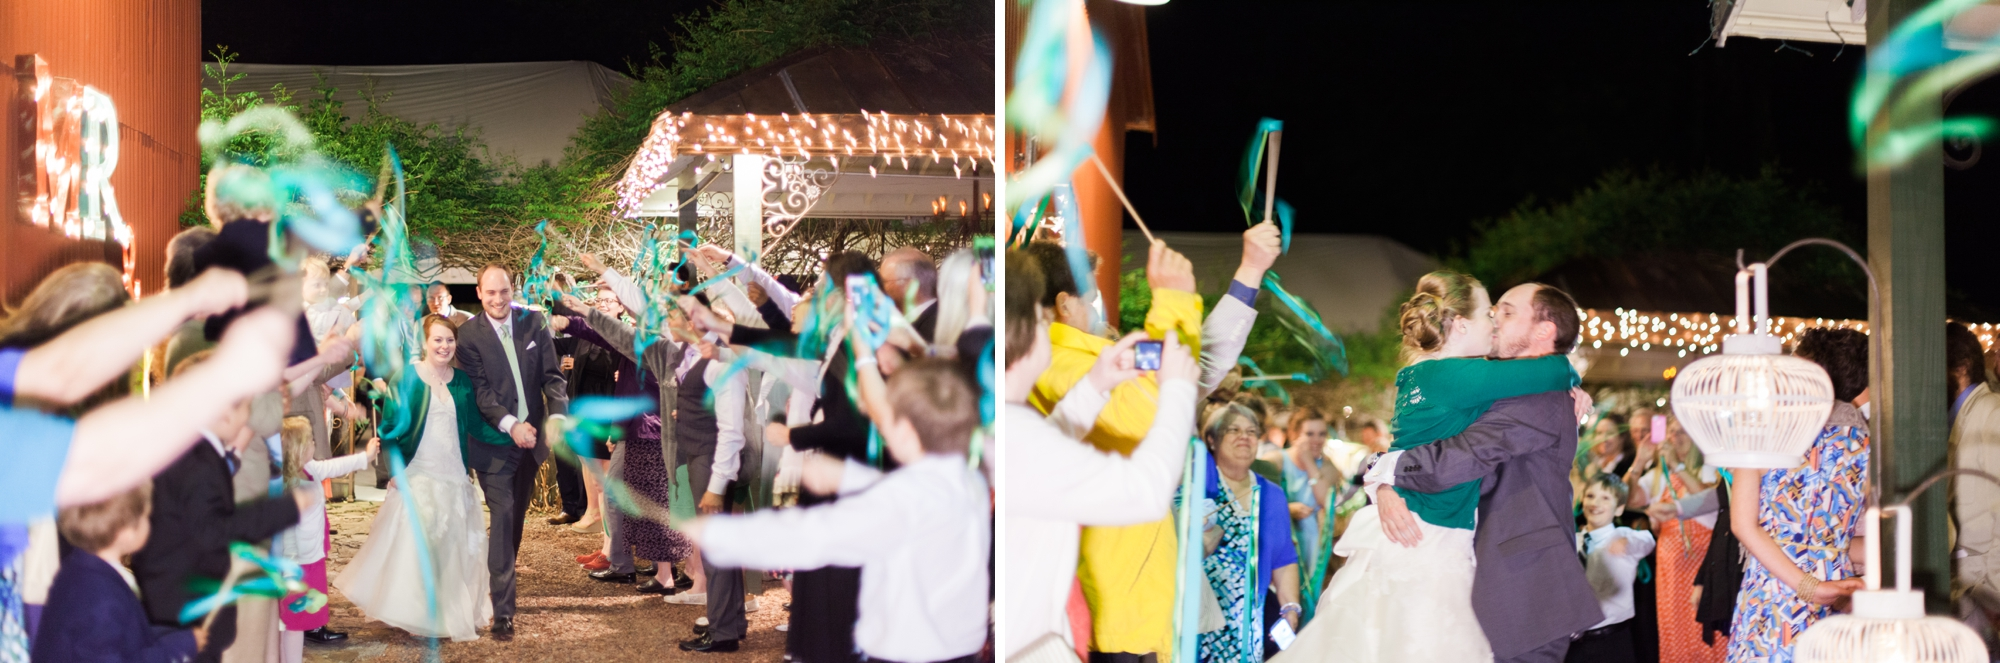 southern wedding film photographer_0002